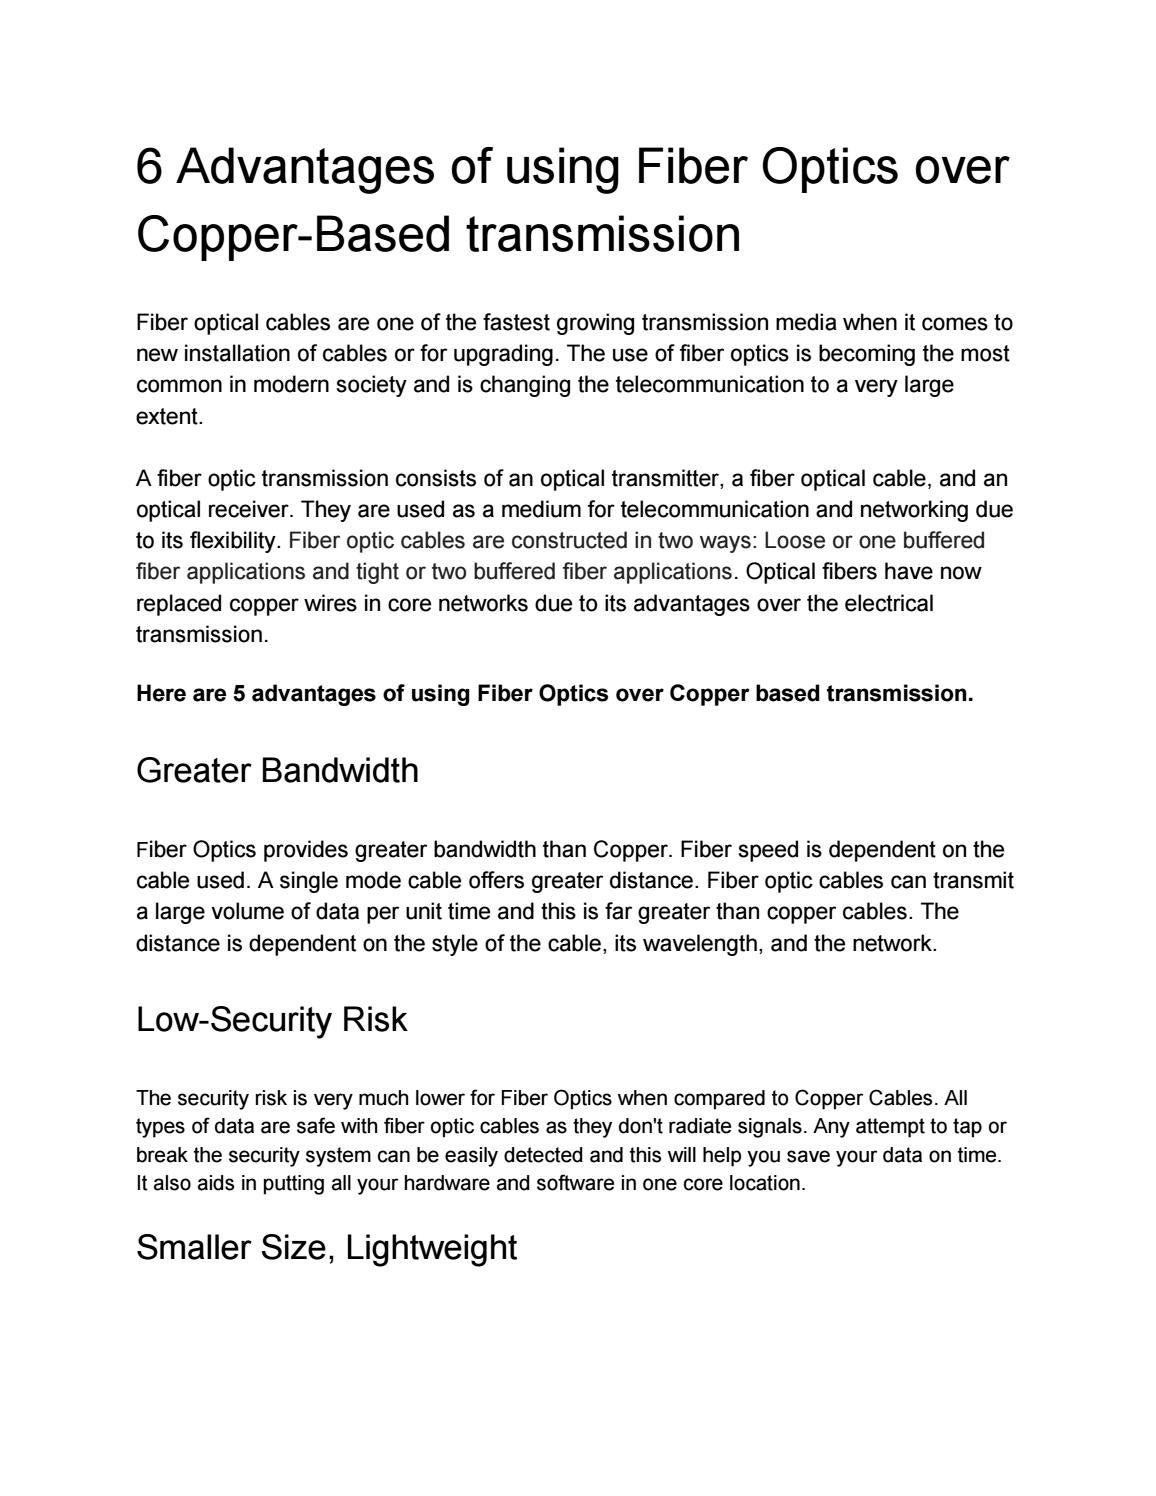 6 Advantages of using Fiber Optics over Copper-Based